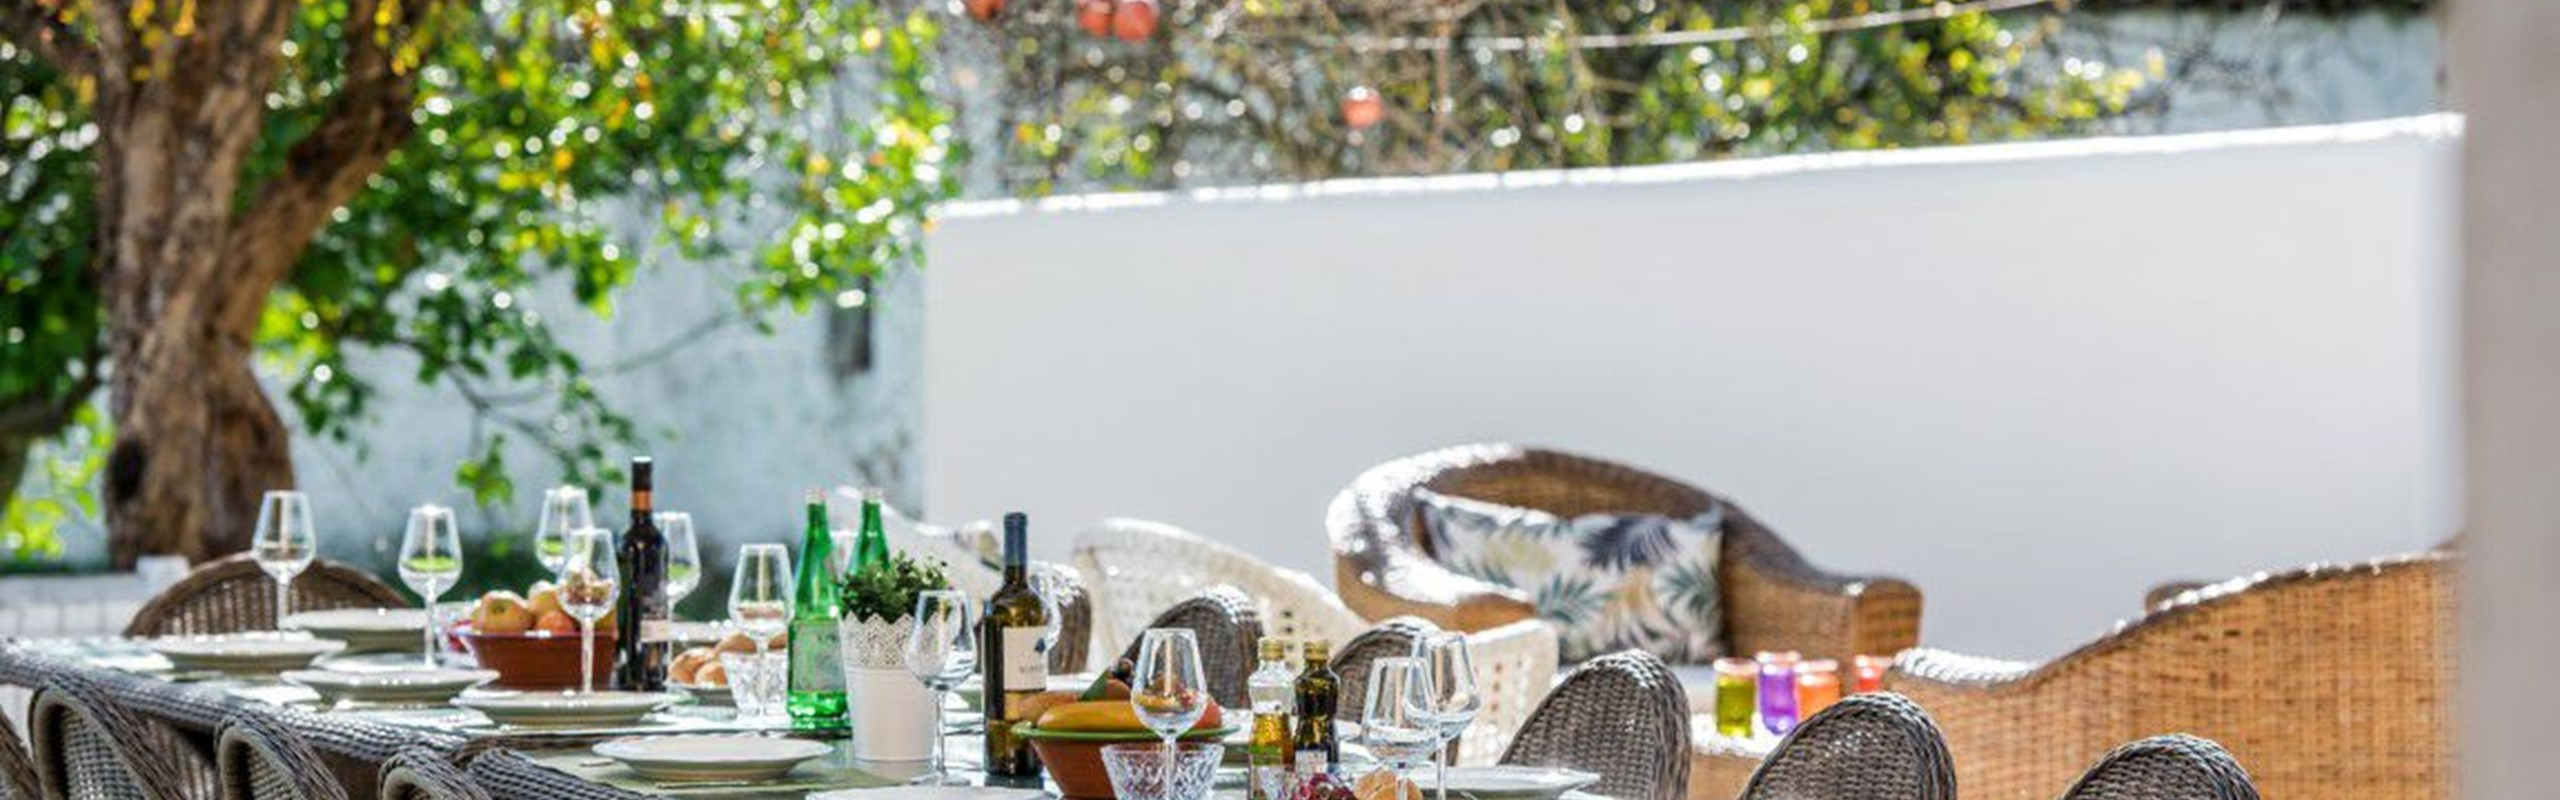 Family Dining Al Fresco In Algarve Holiday Villa